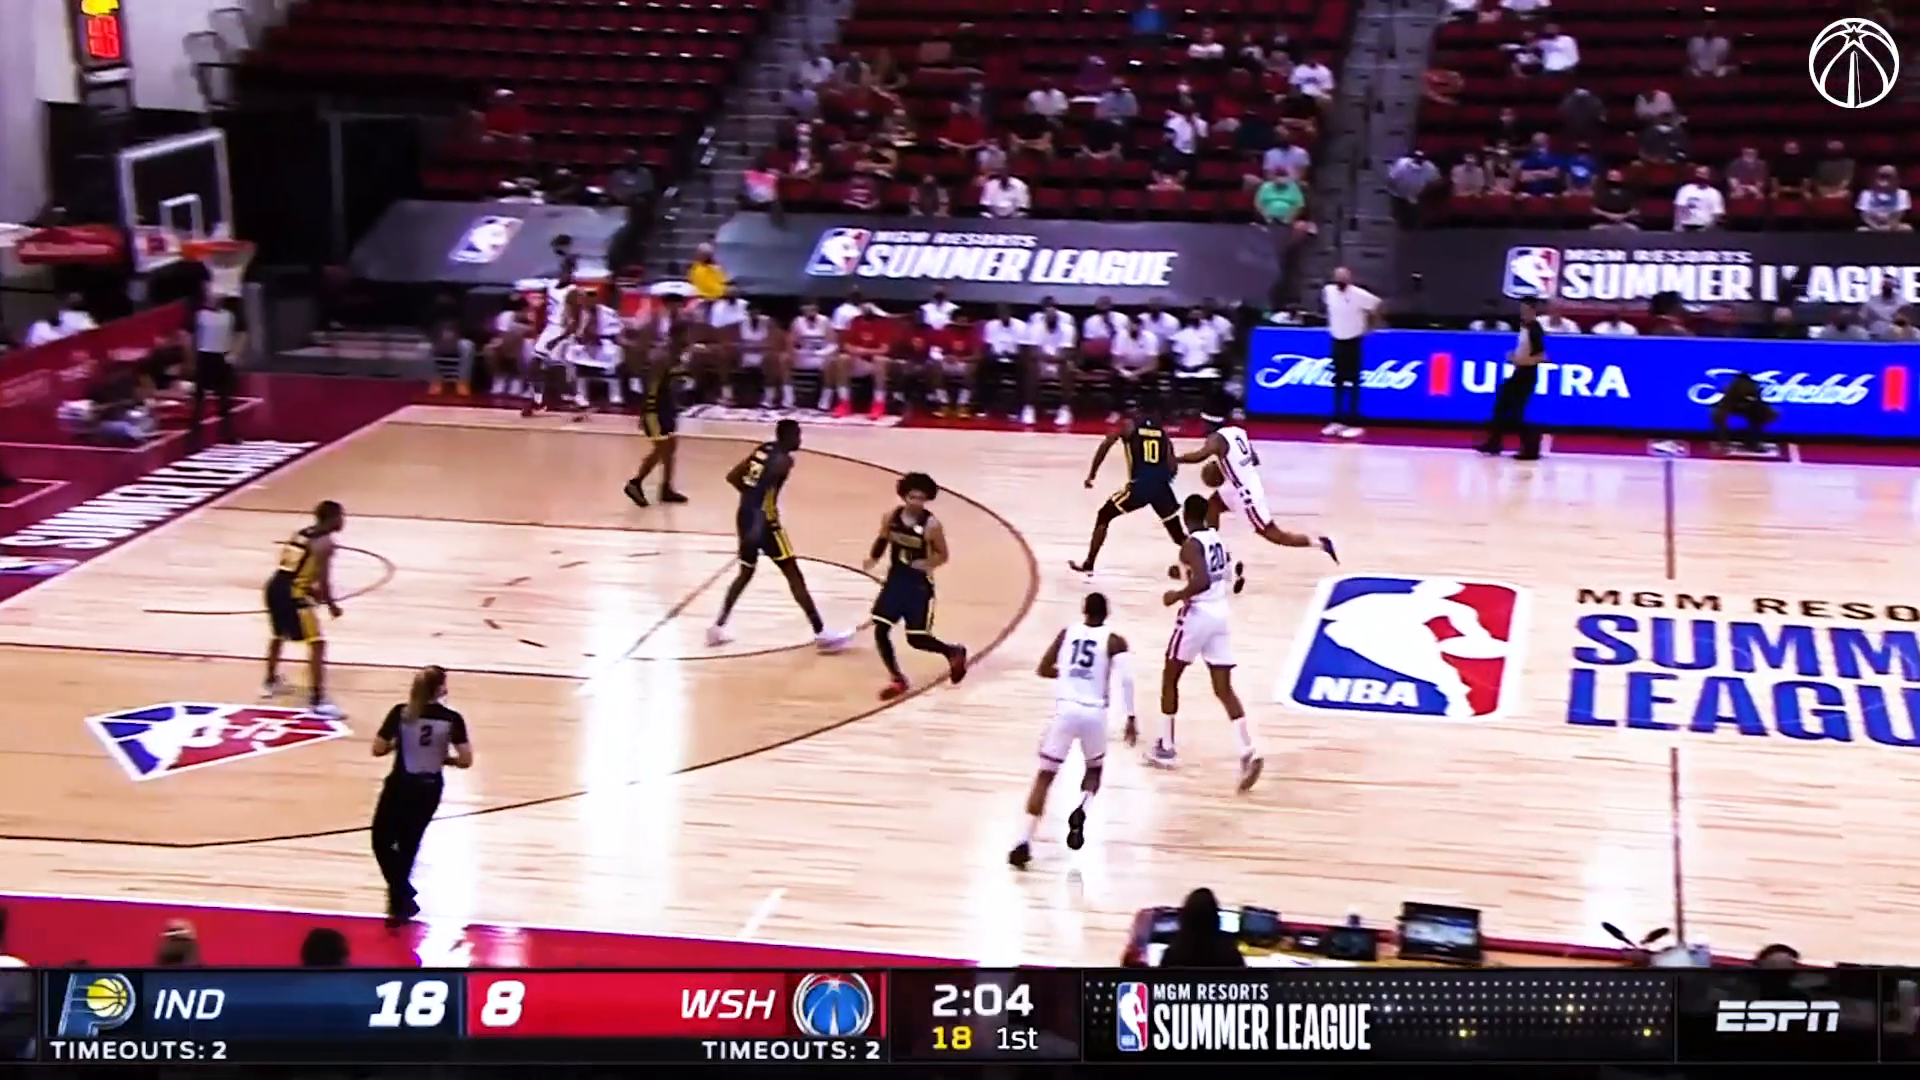 Top plays from Wizards Summer League